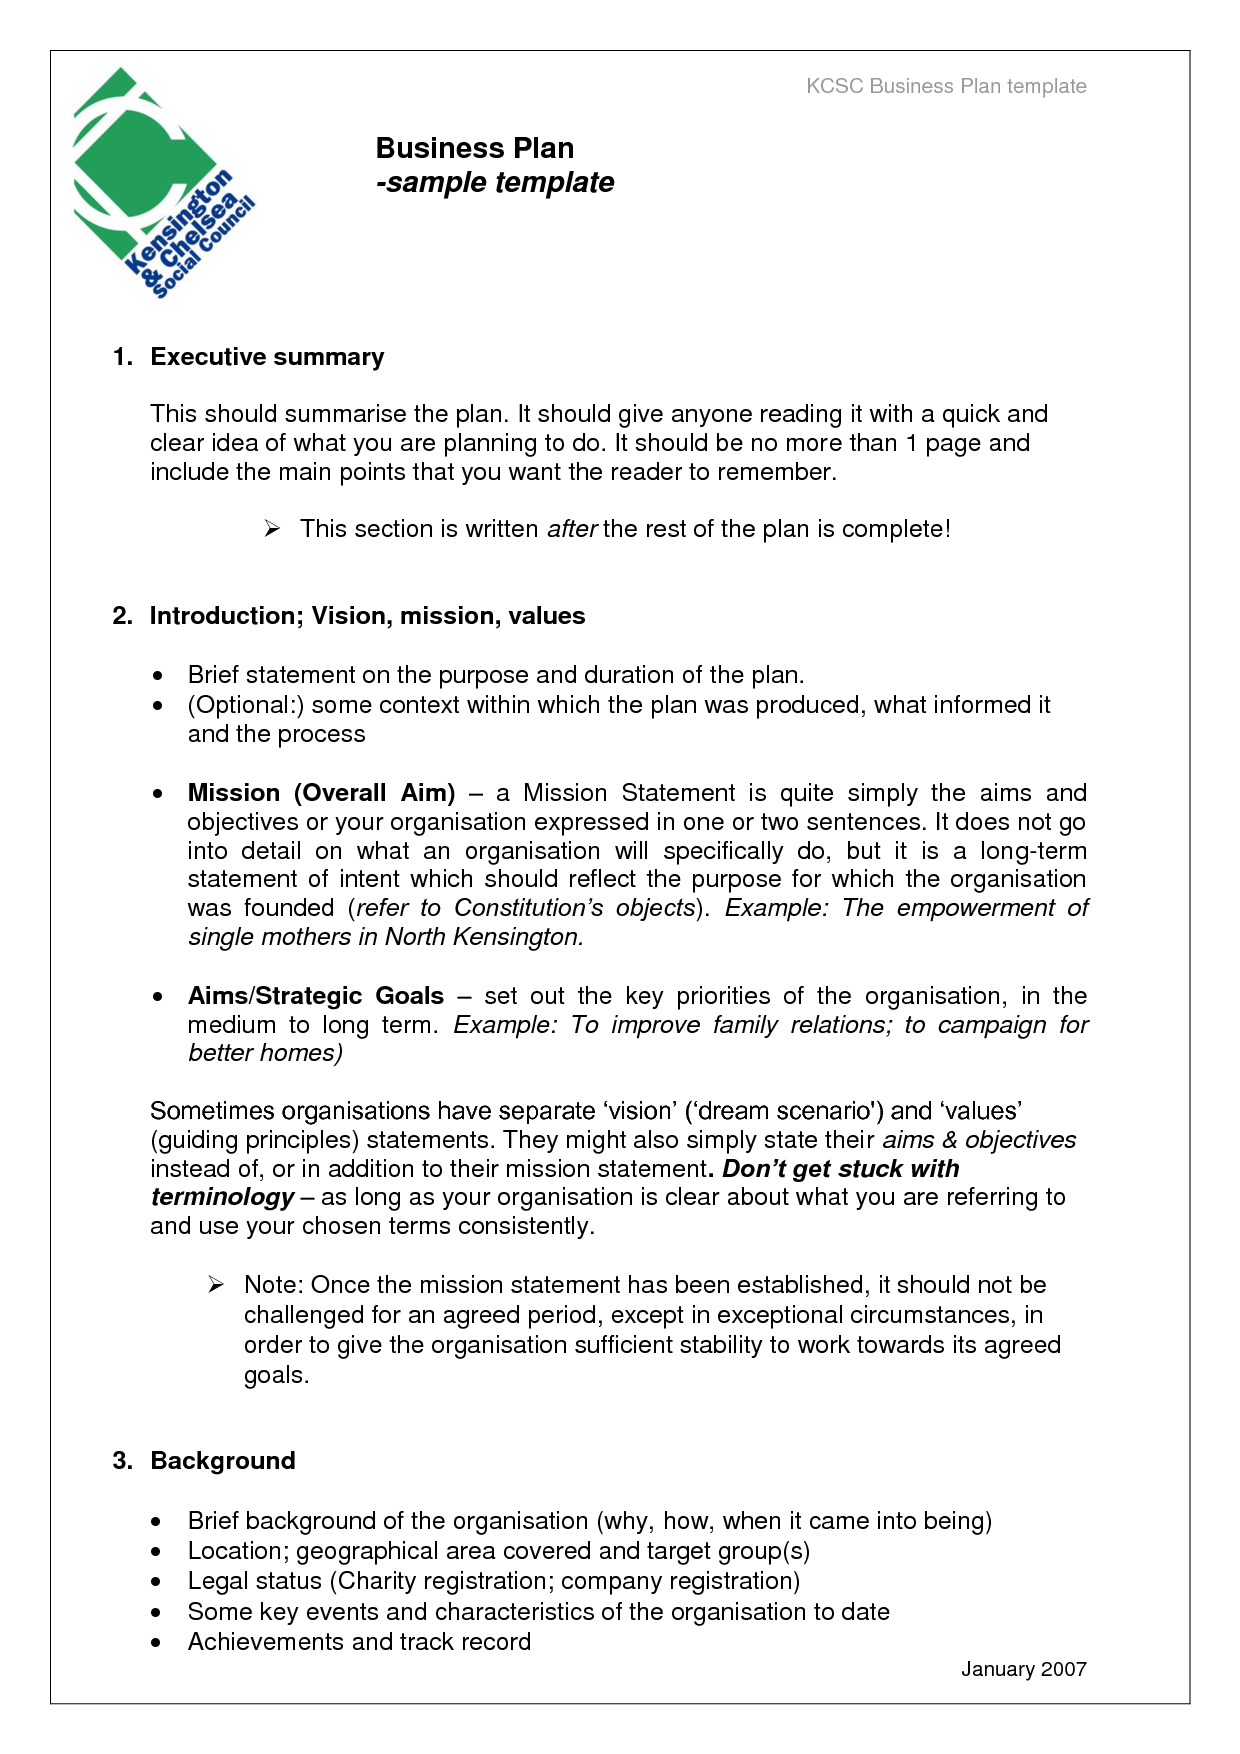 business plan template essay - business plan for an established business this business plan consists of a narrative and several financial spreadsheets the narrative template is the body of the business plan it contains more than 150 questions divided into several sections.